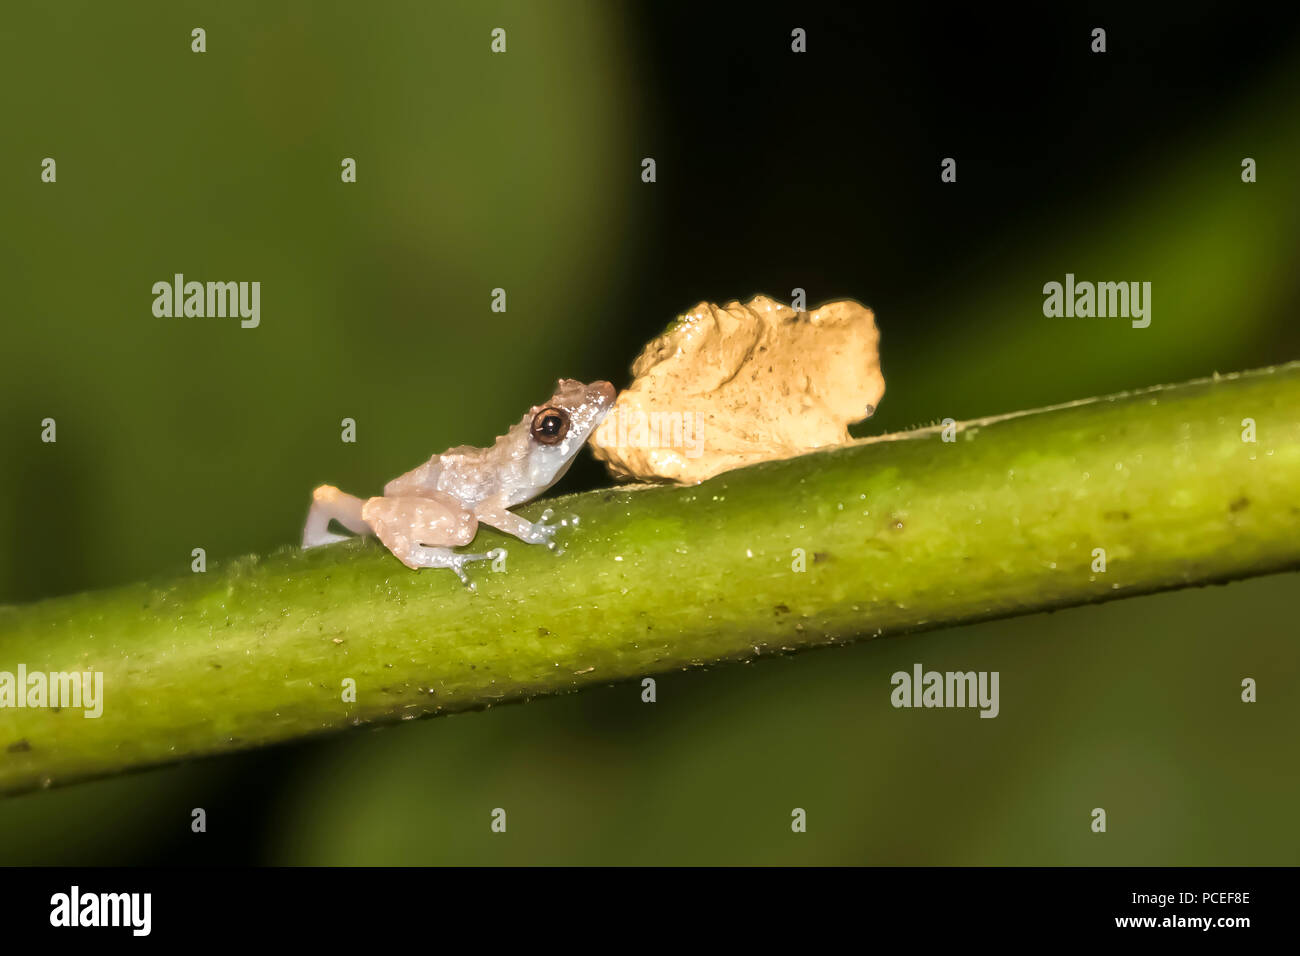 Tiny Glass Frog Rests Chin on Fungus in Close Up Jungle Image - Stock Image